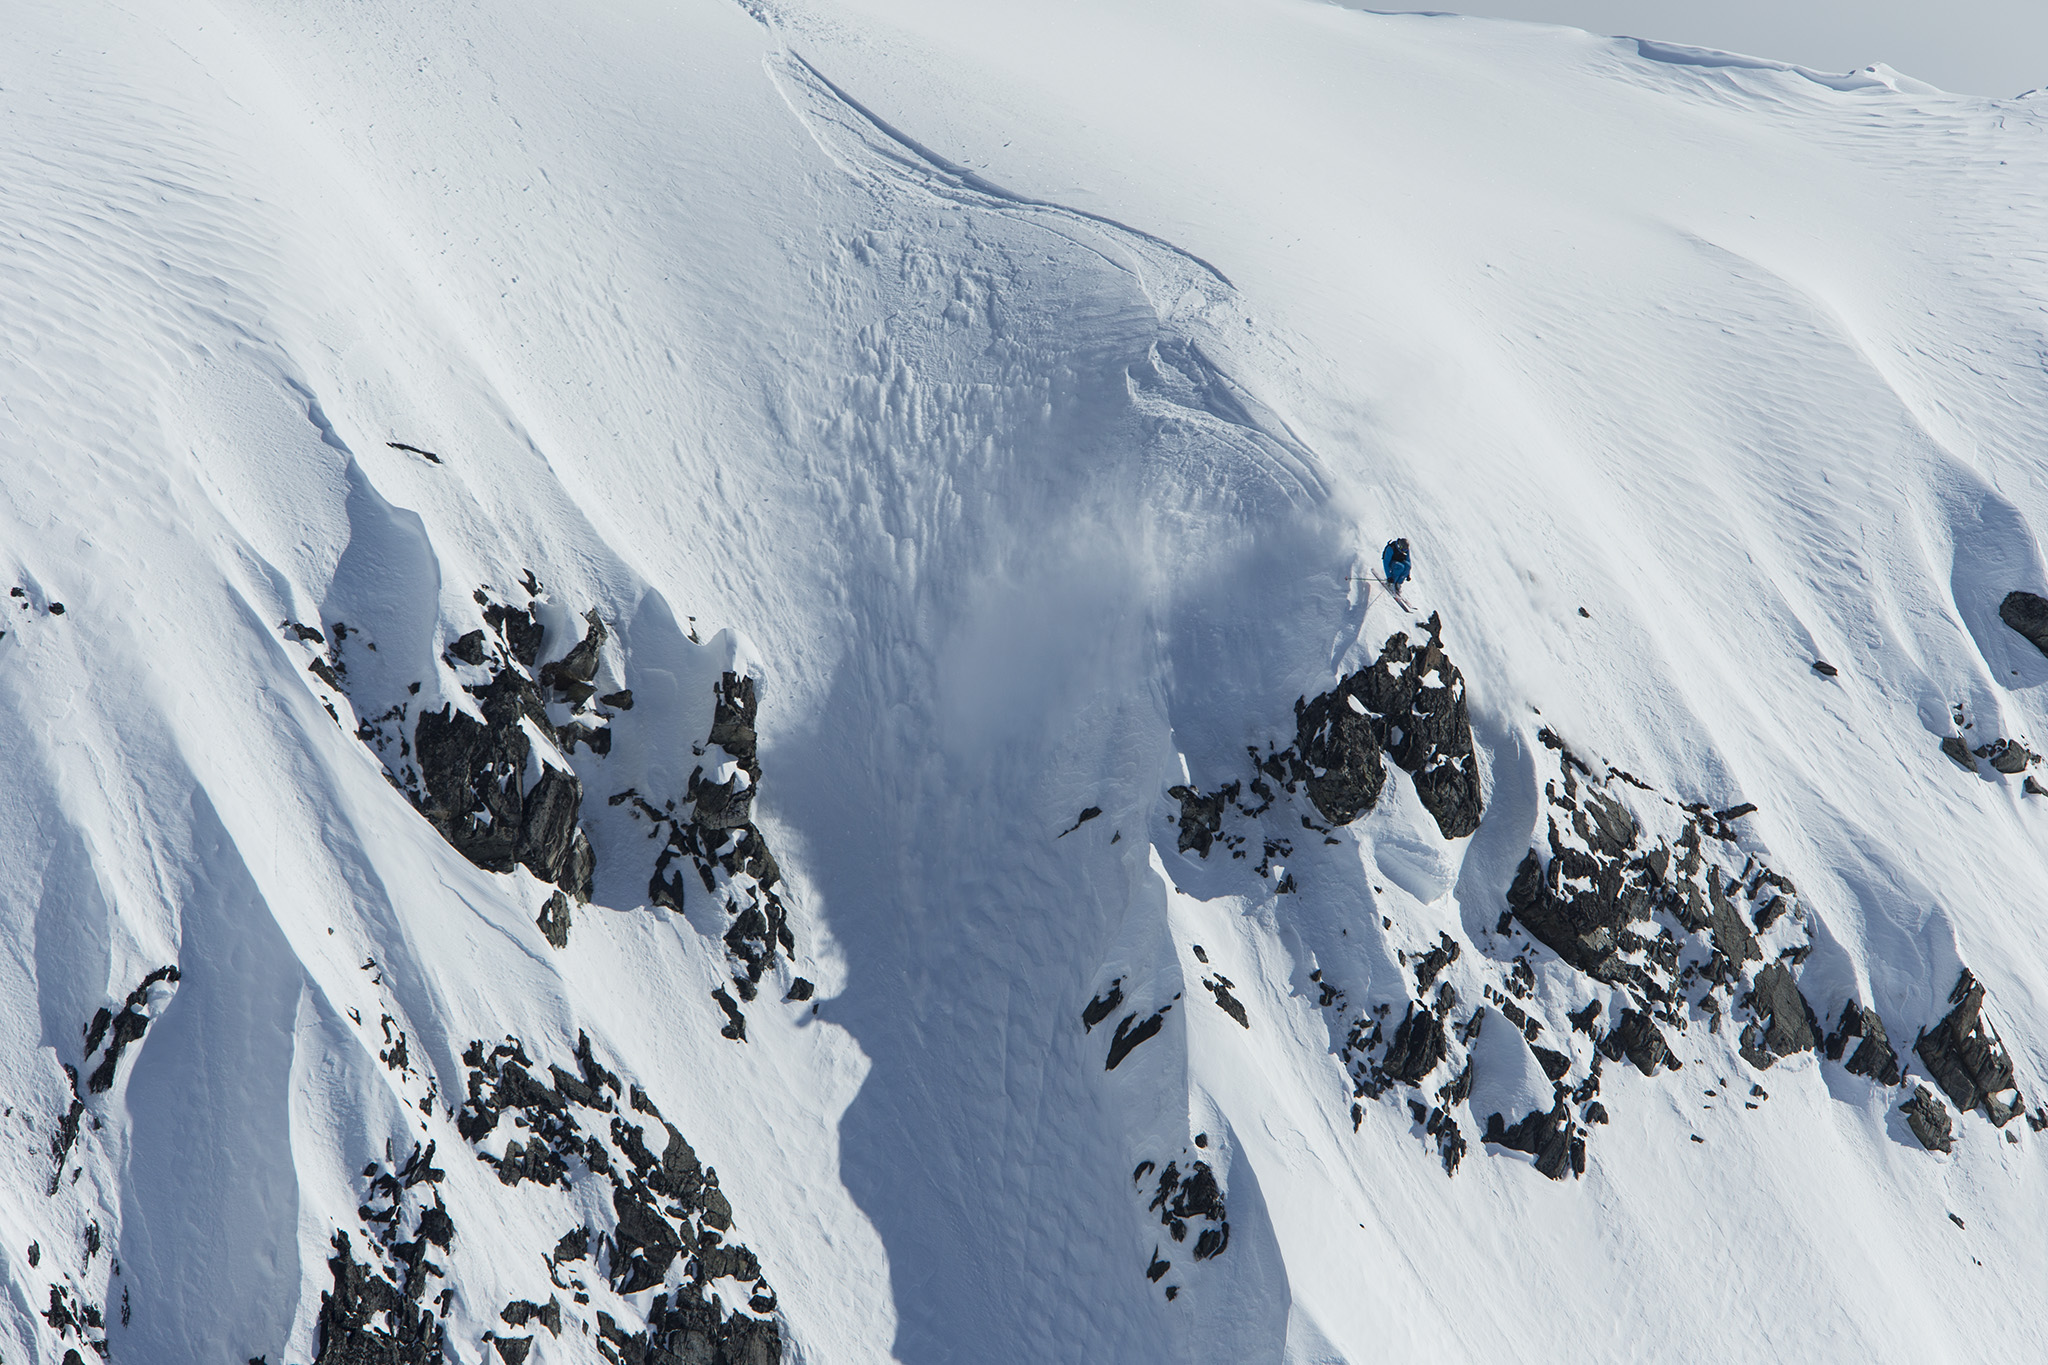 Ian McIntosh, Neacola Mountains, Alaska photo:Adam Clark